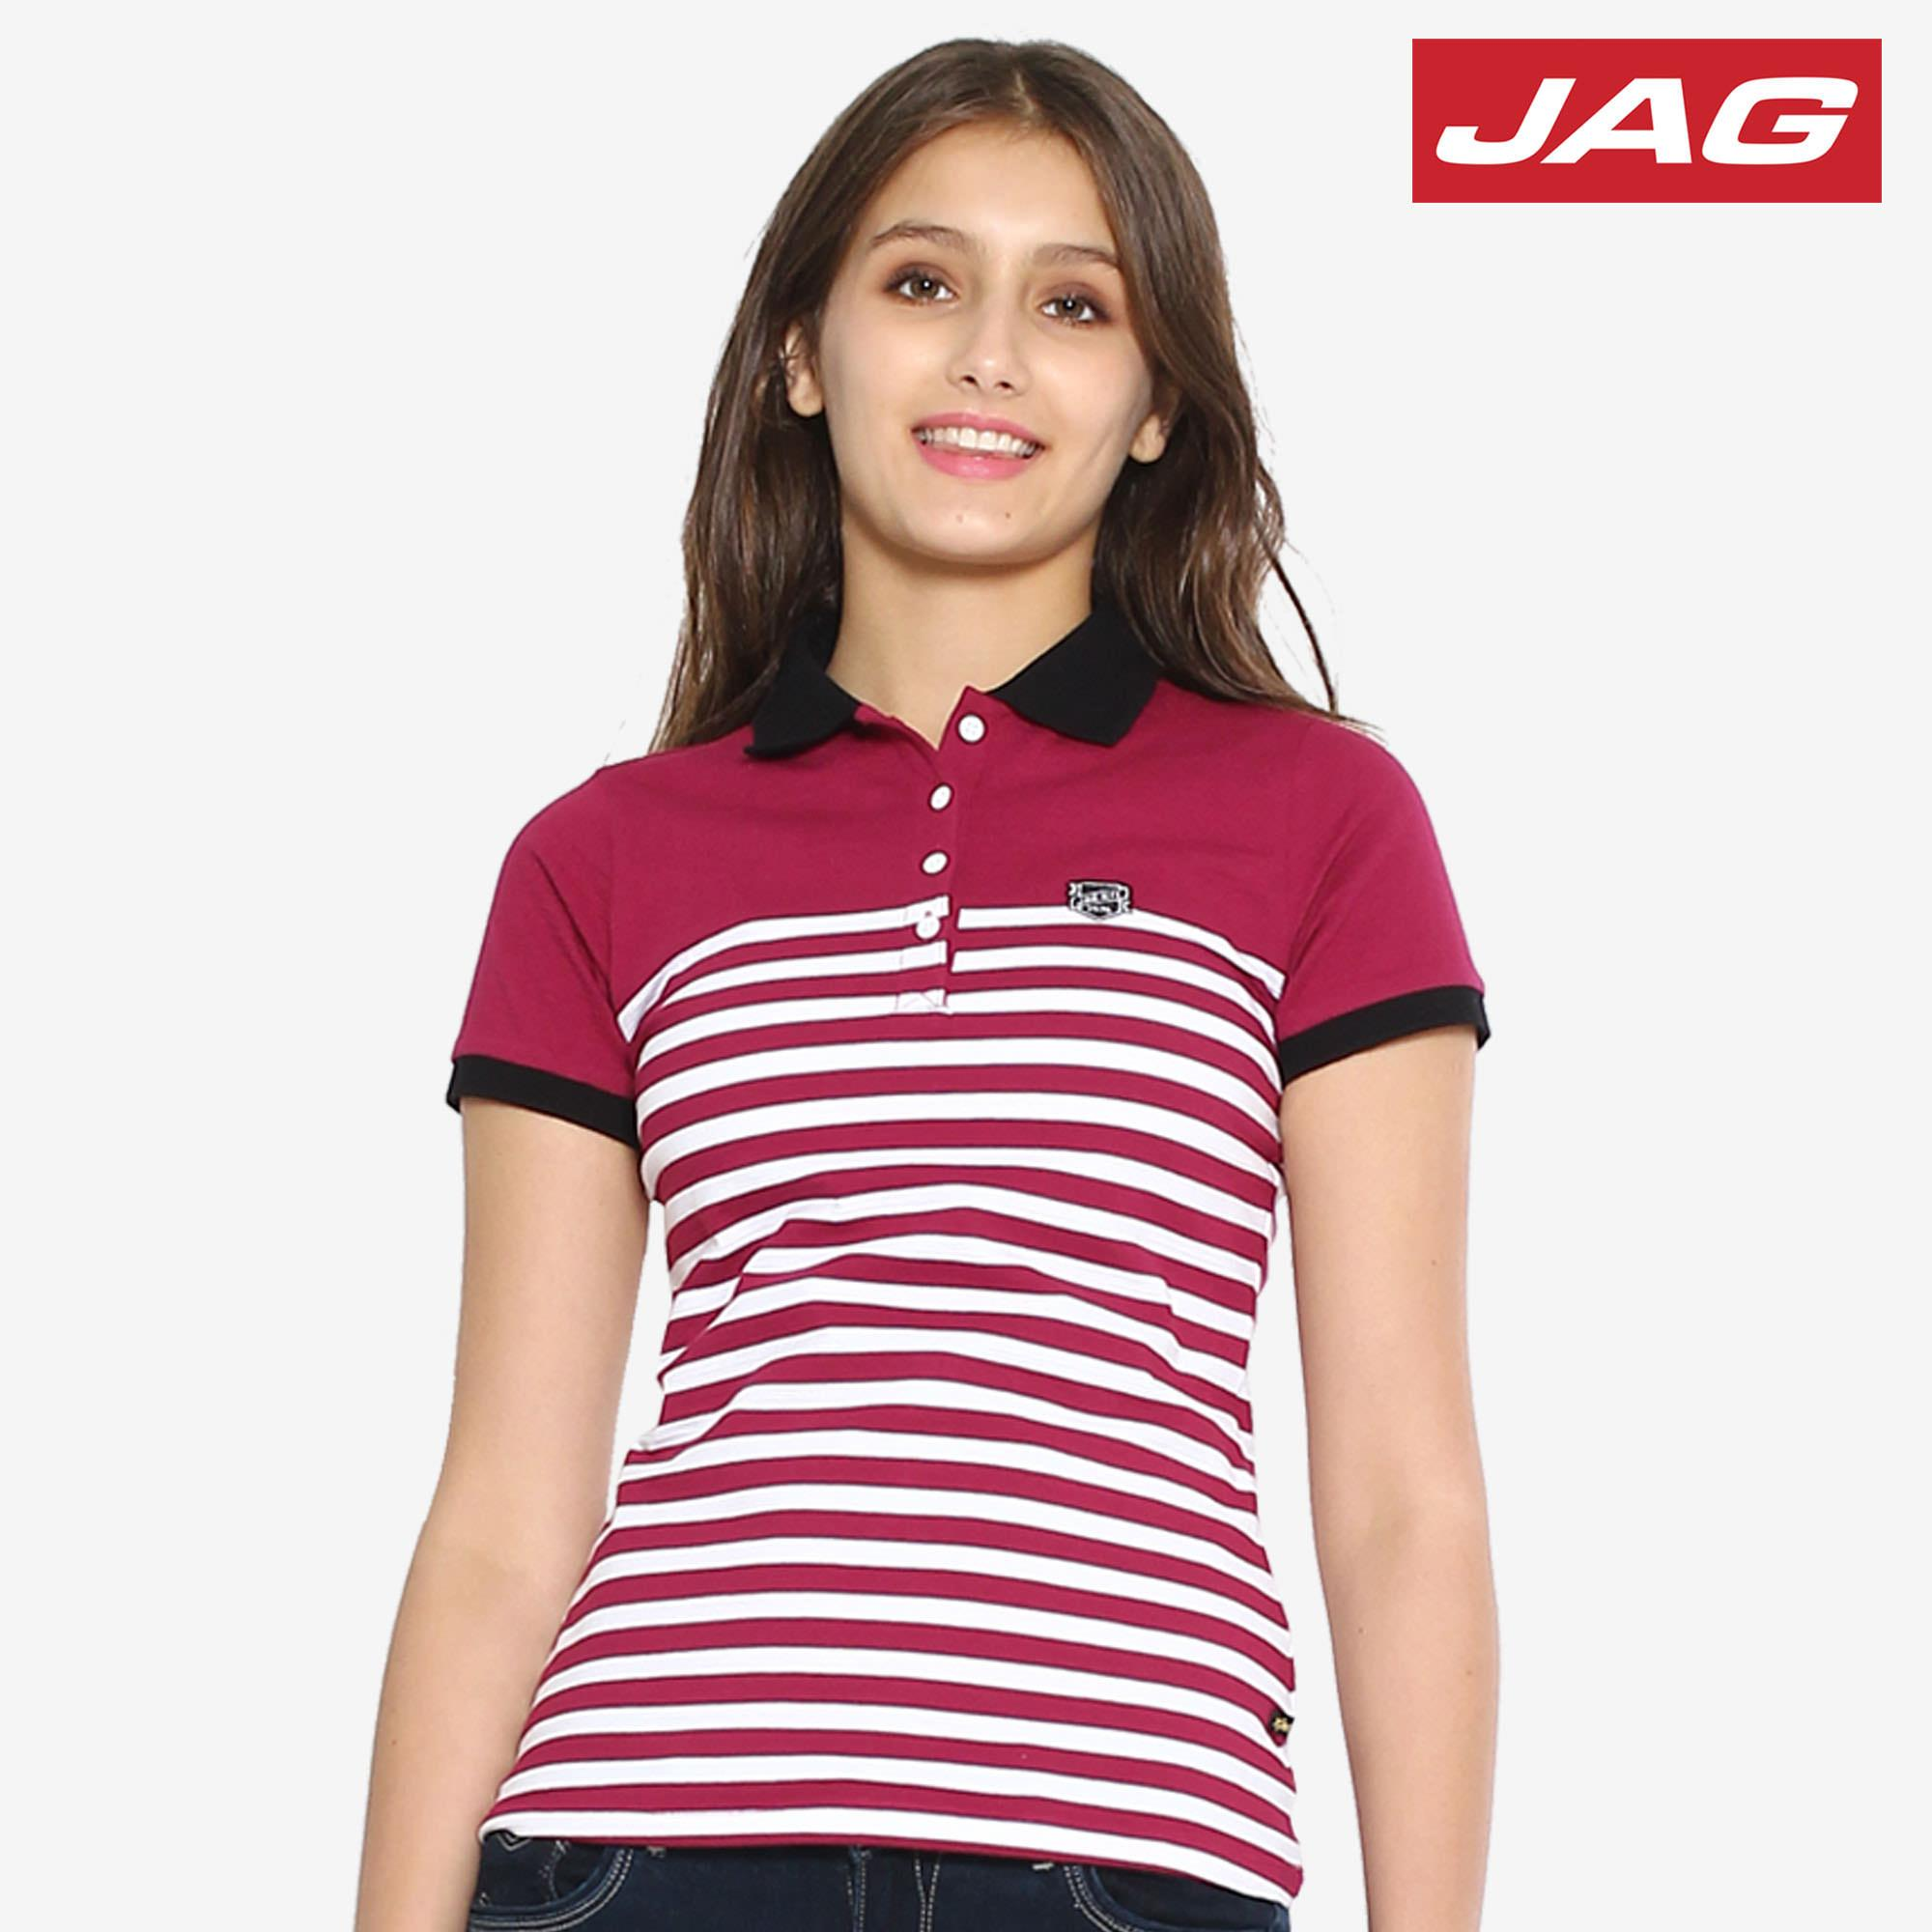 e07d2aa5dfb JAG Philippines  JAG price list - JAG Fashion Clothing for Men ...